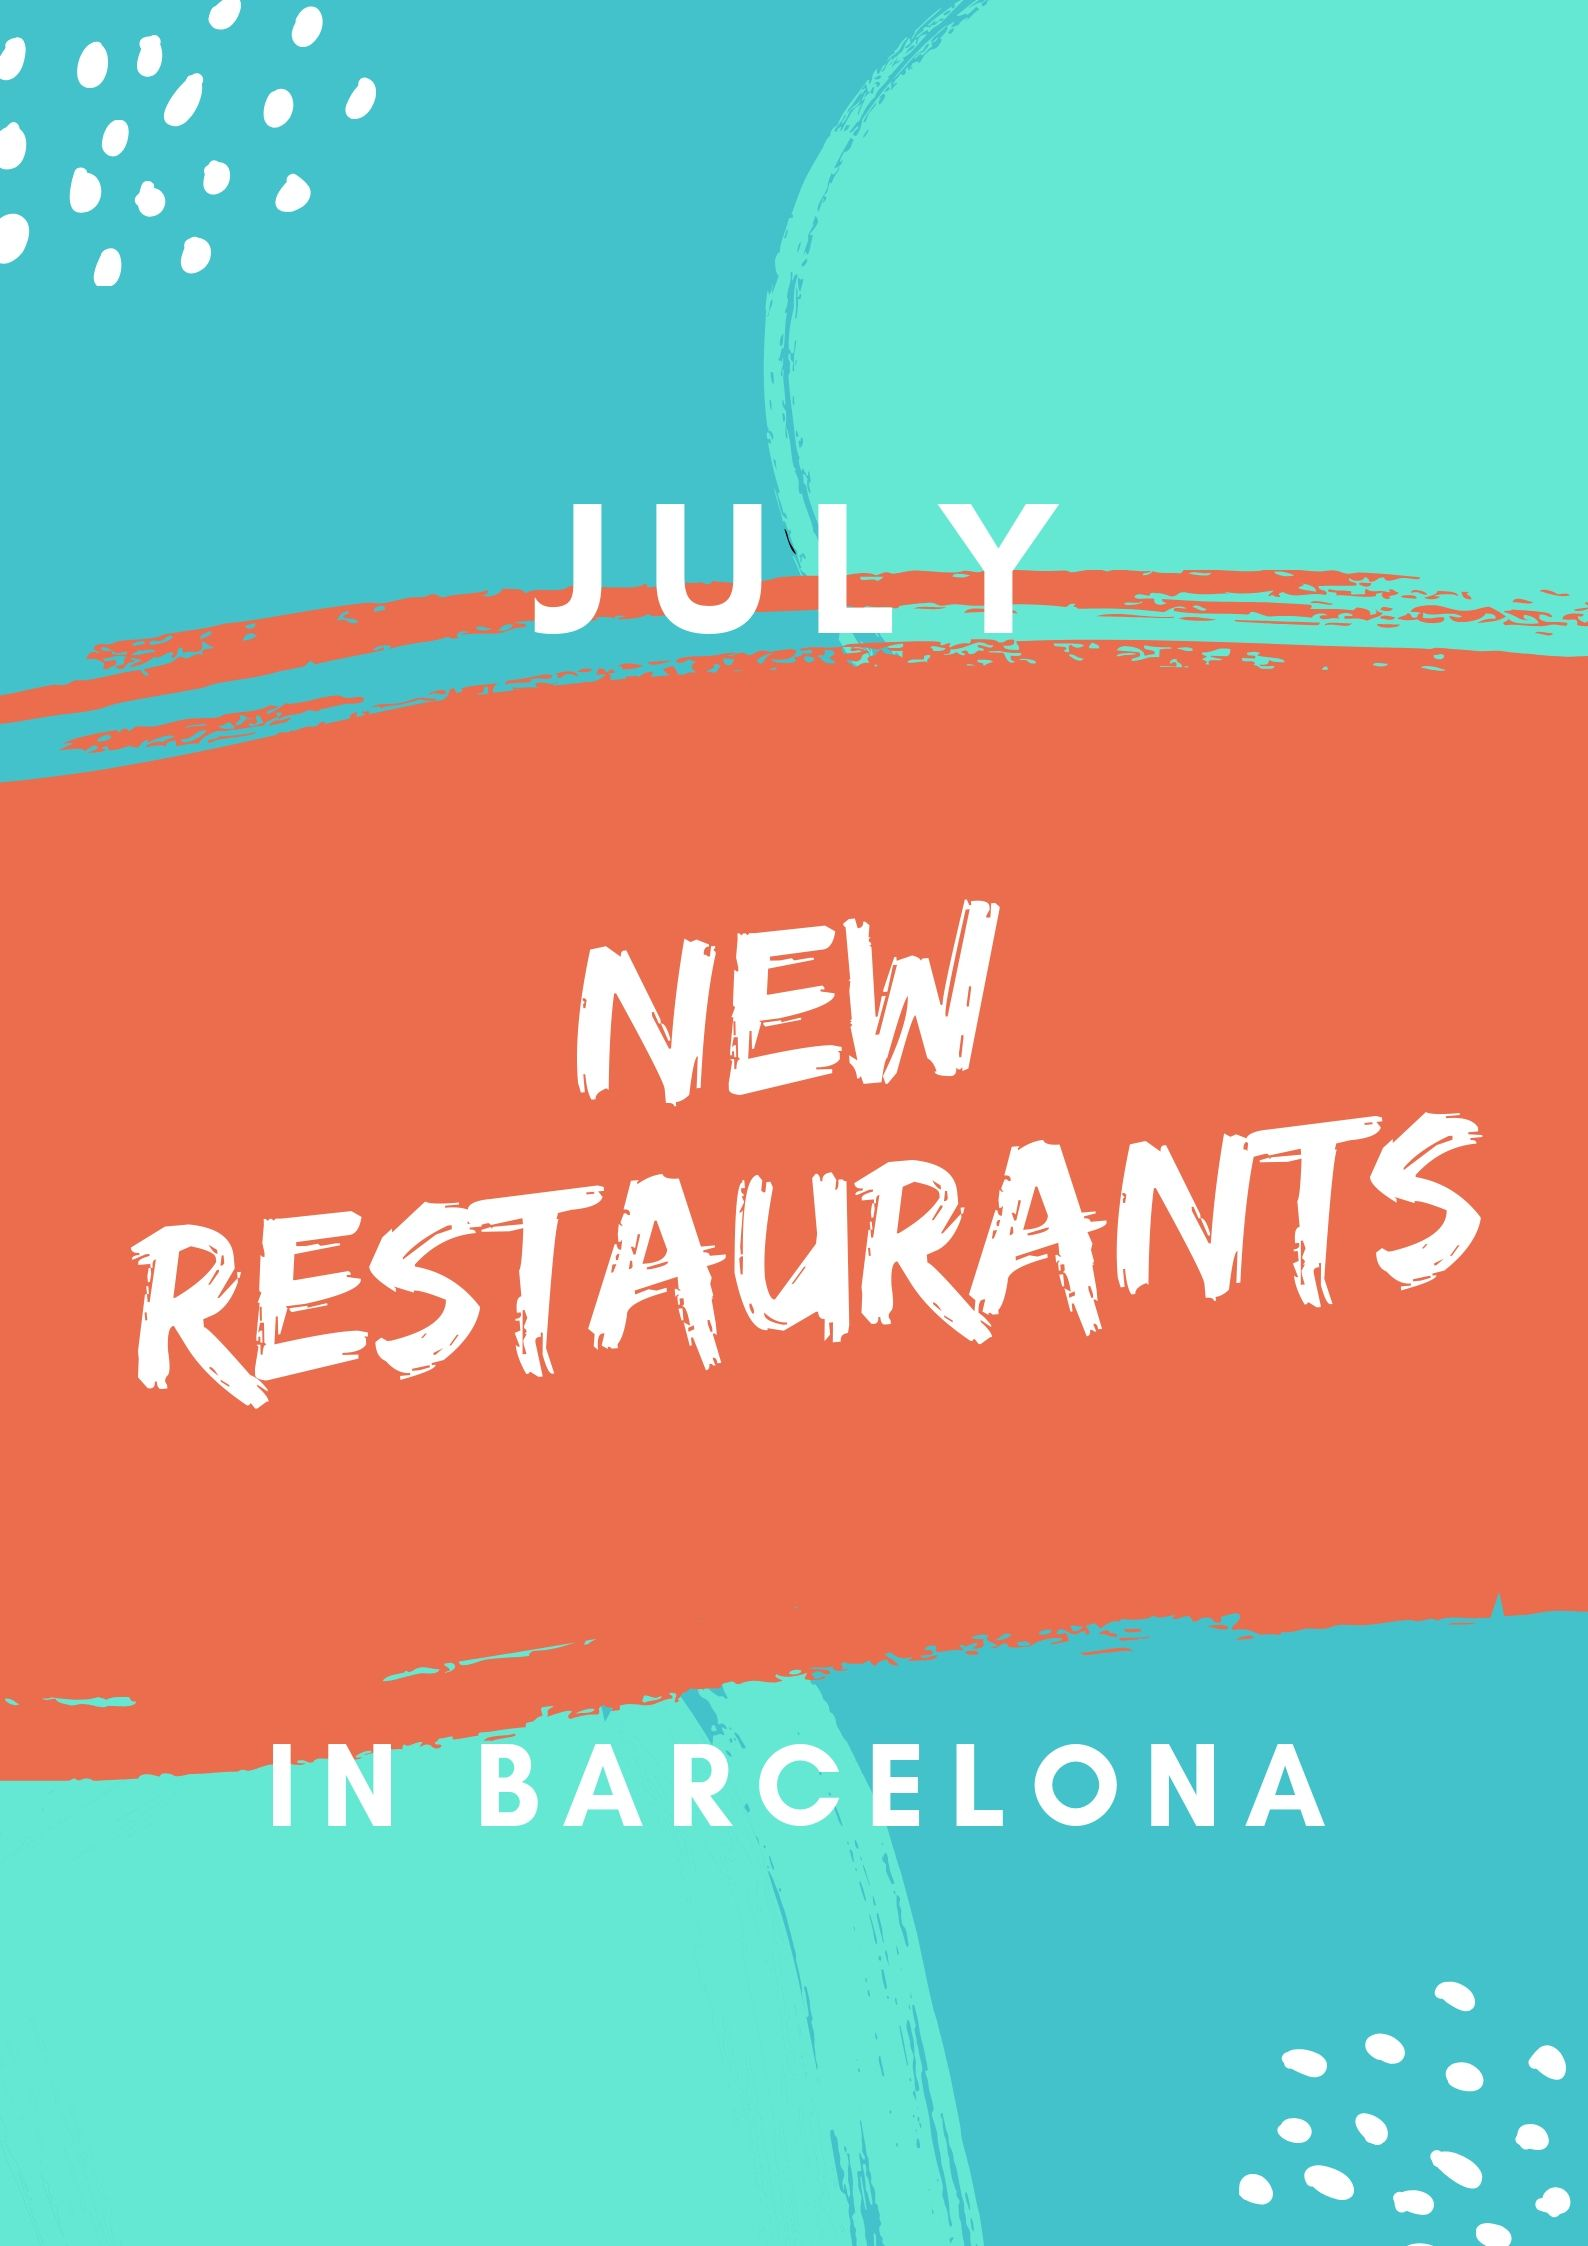 new restaurants Barcelona JULY.jpg